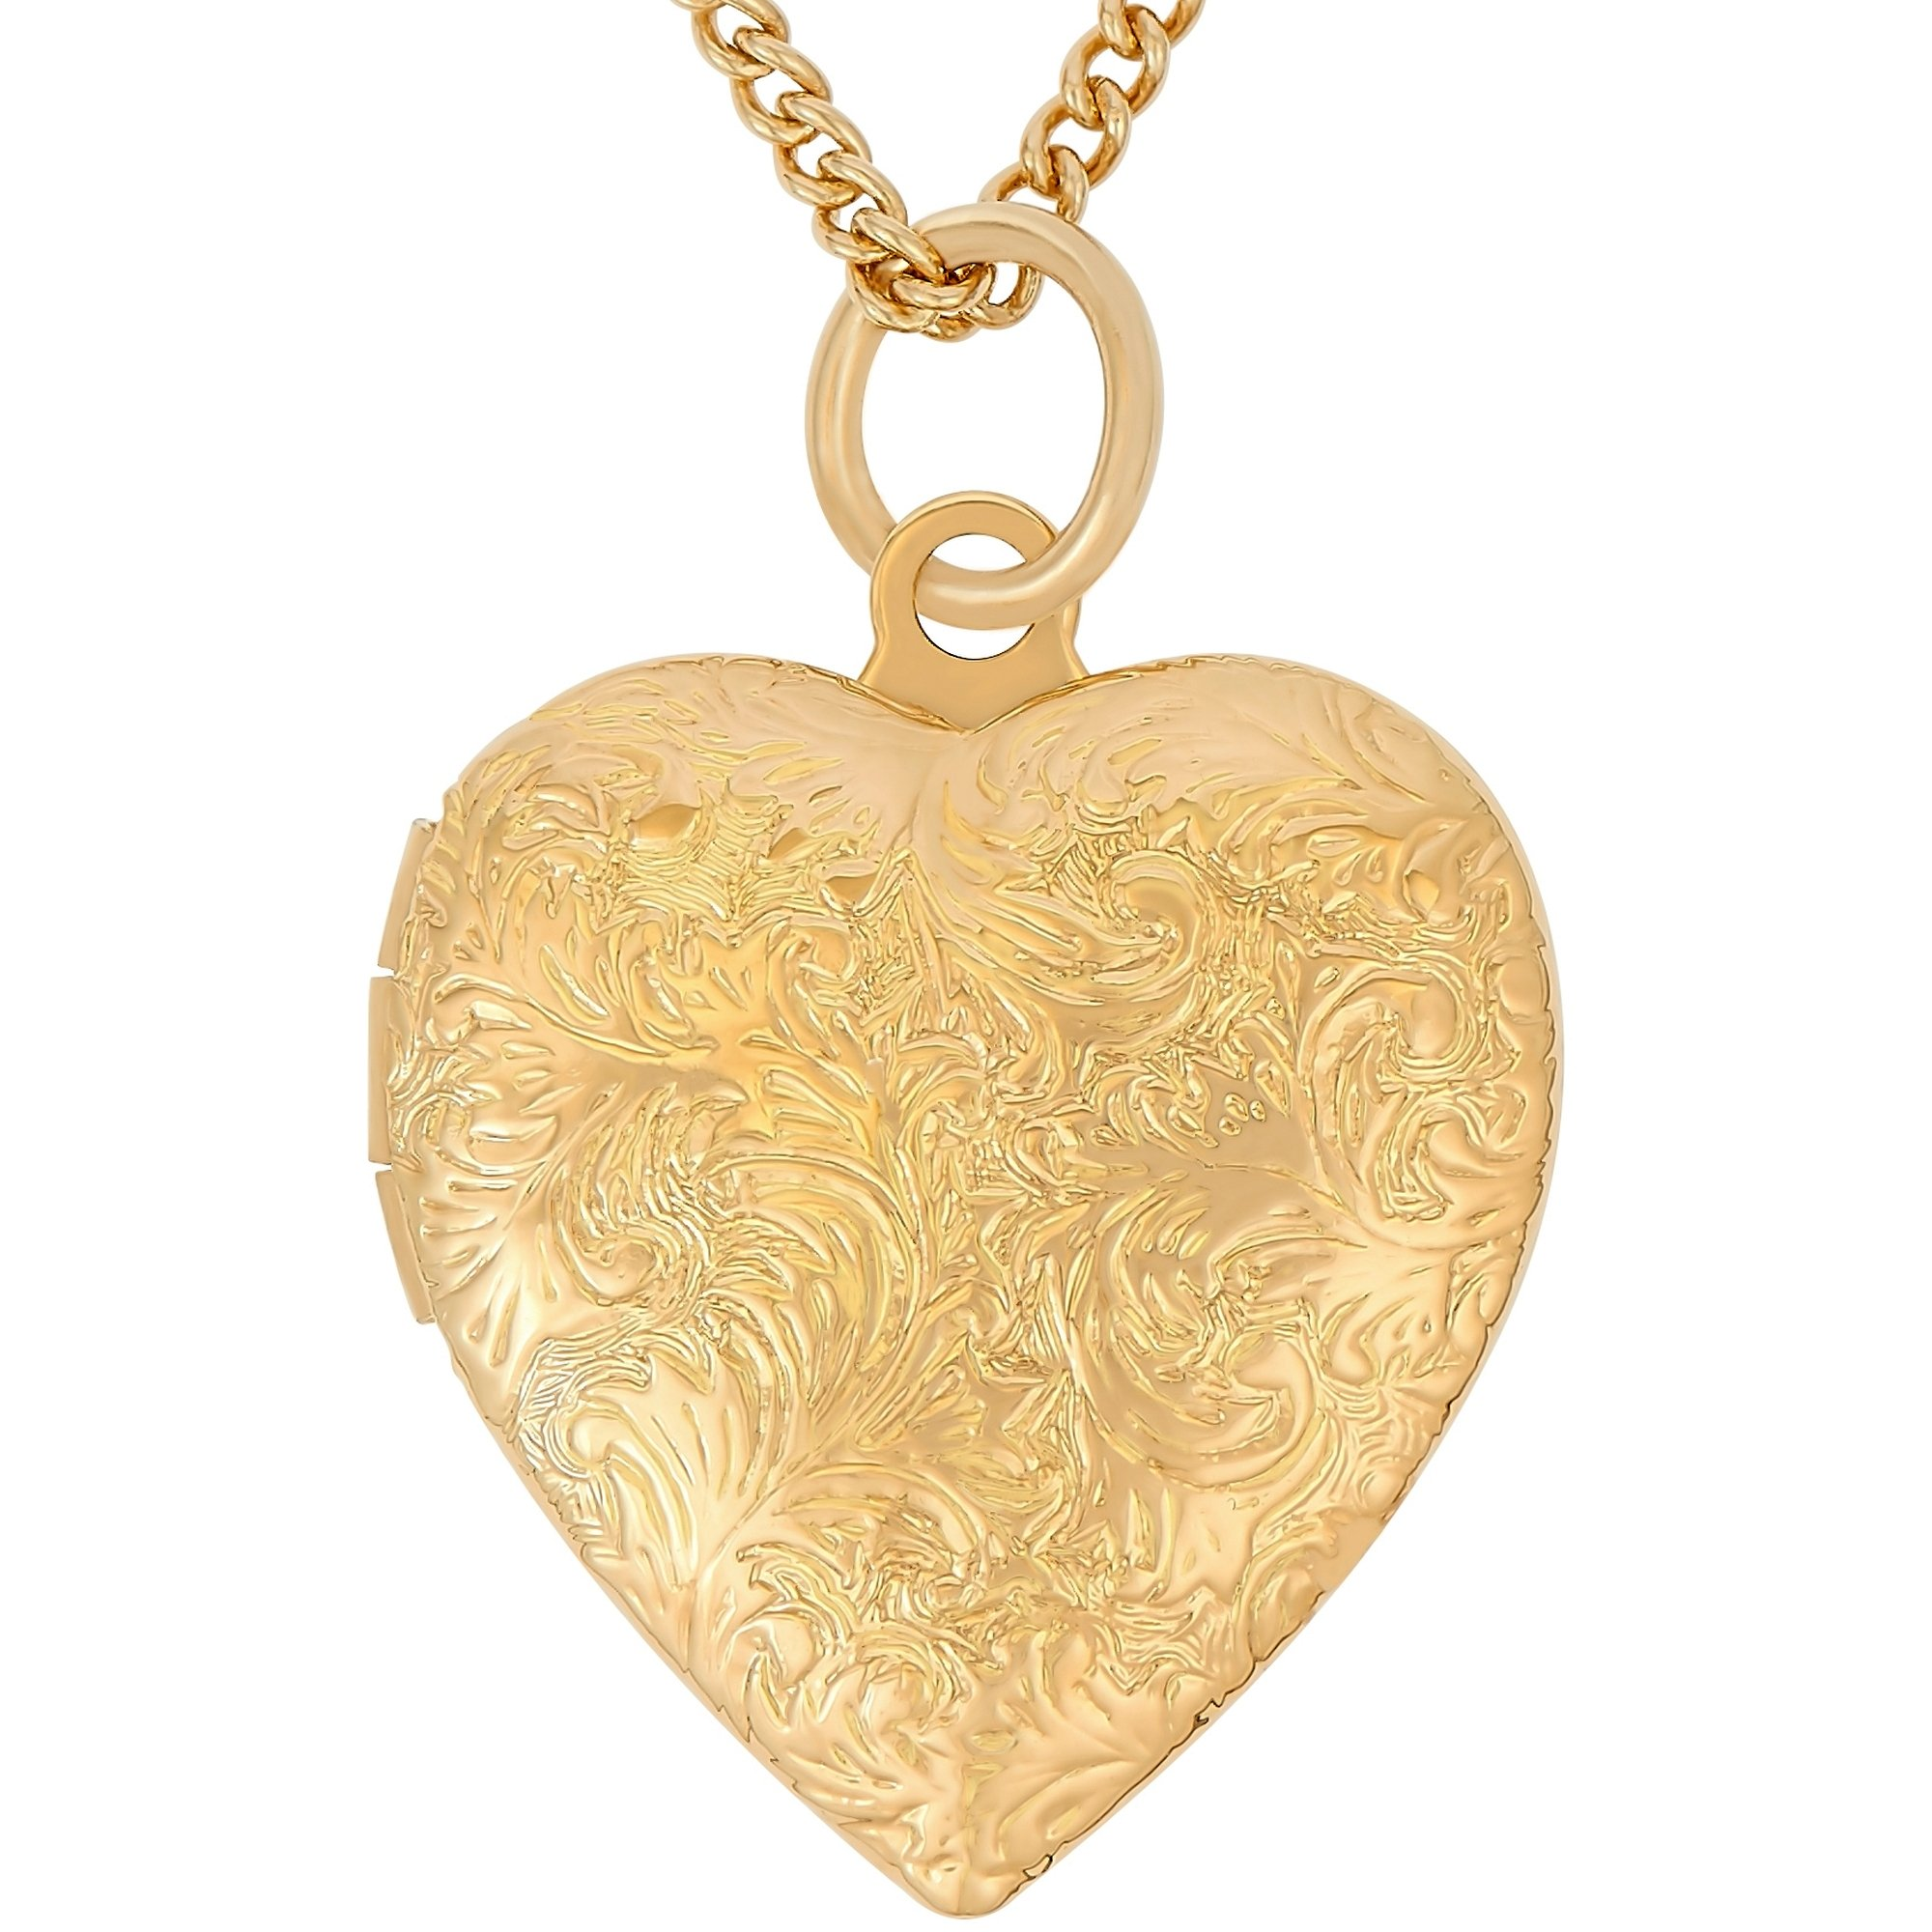 design miracle ideas best filled lockets children heart in childrens locket kid s gold diamond necklace pleasurable